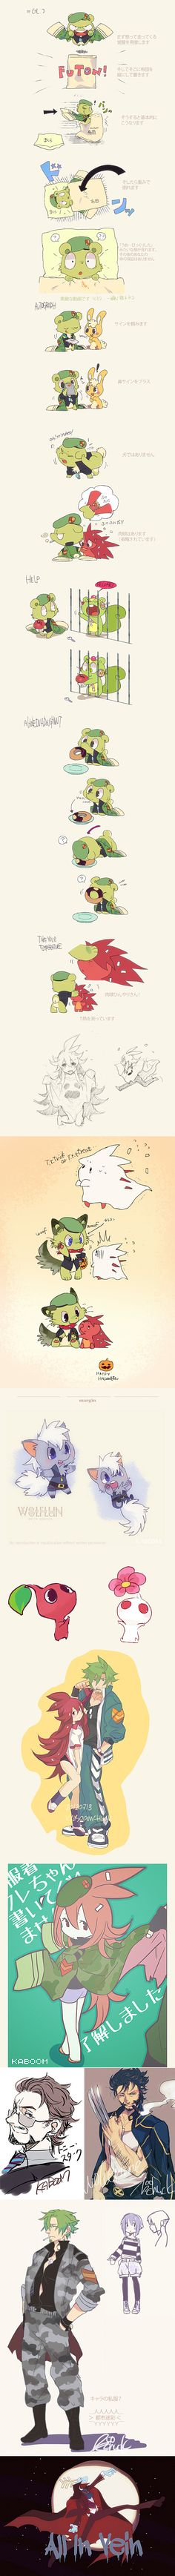 art by KABOOM CHUCK --- Flippy is so adorable and wow at the Wolverine towards the bottom